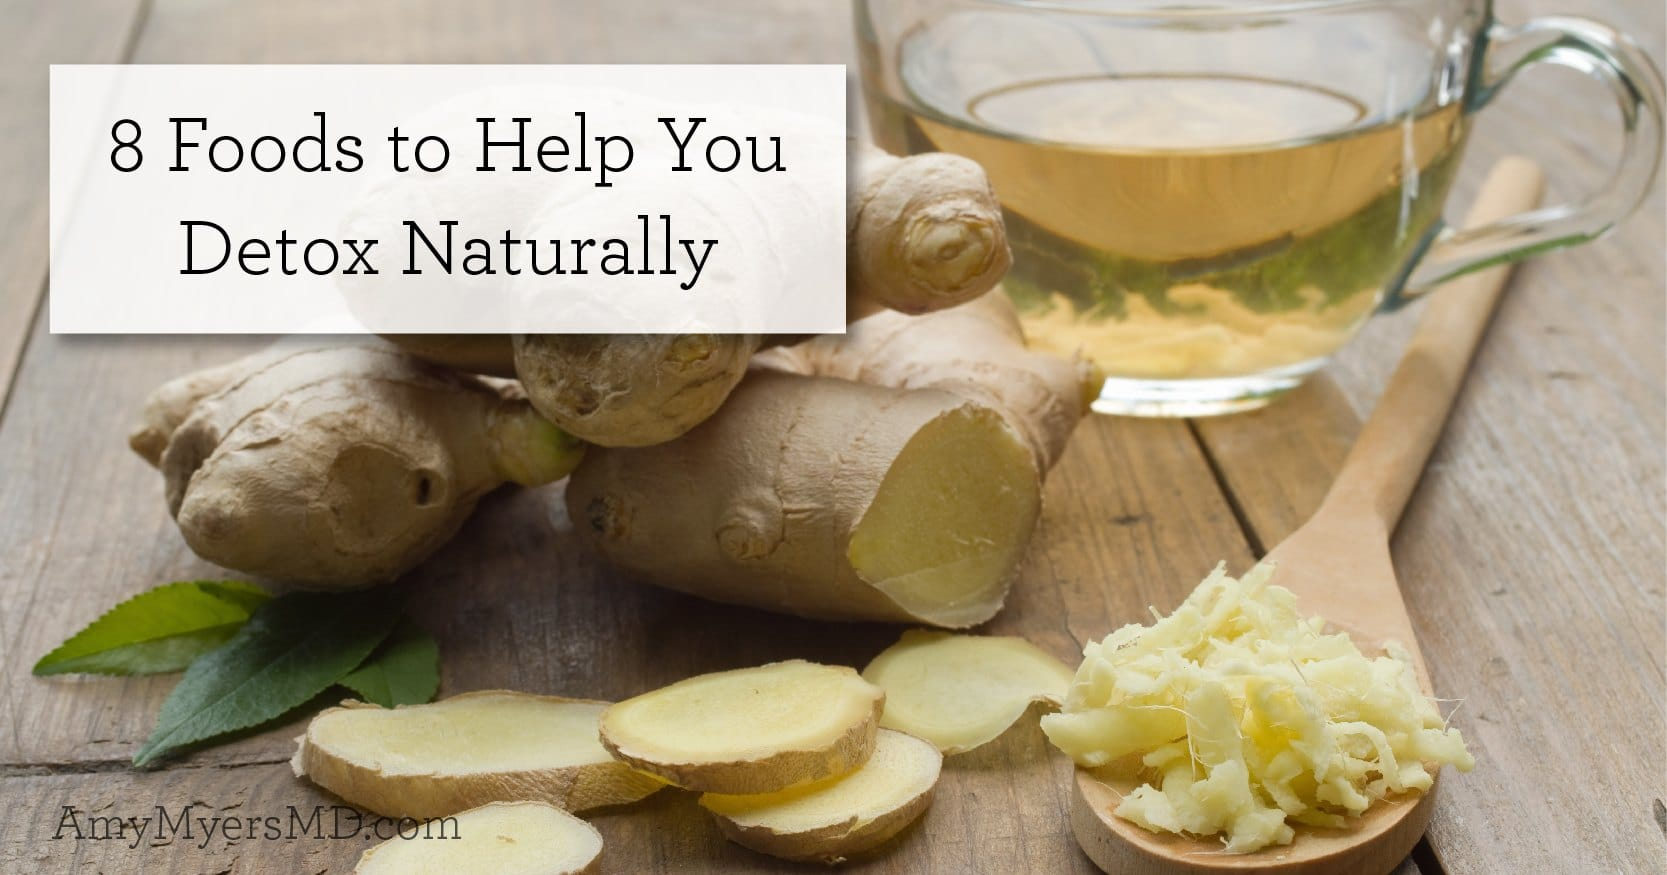 How Can I Repair My Gut Naturally